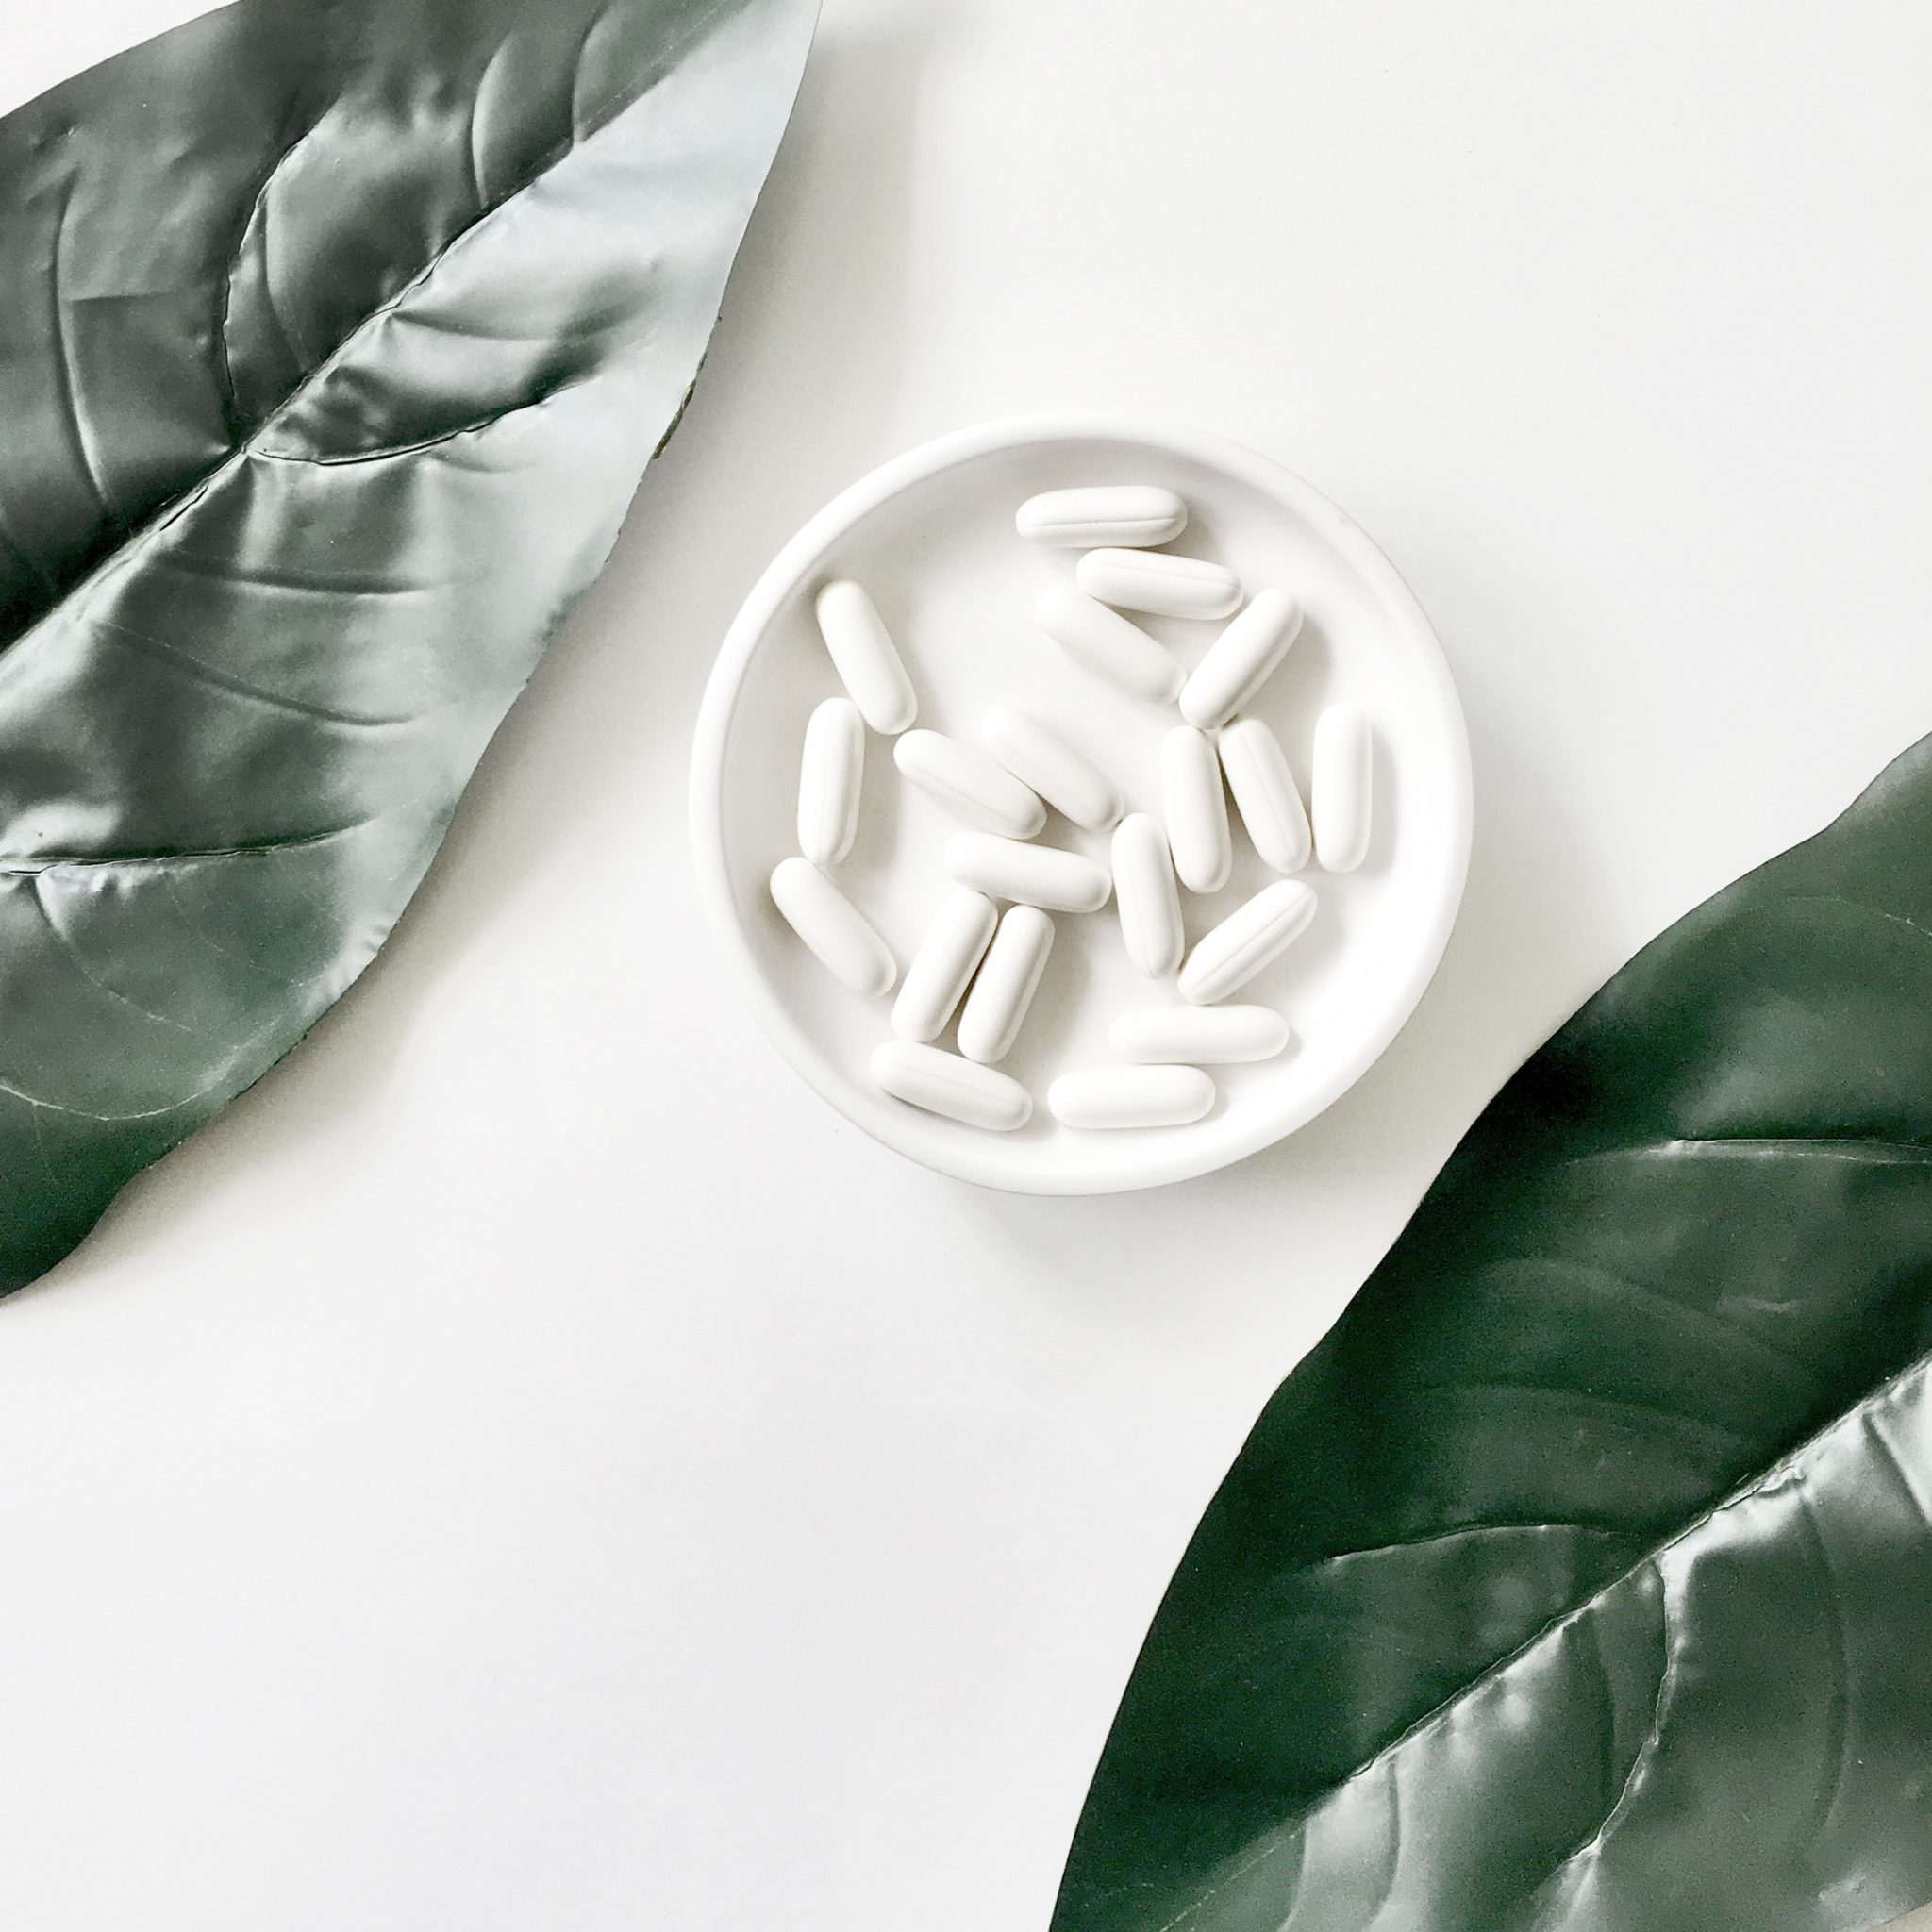 birds eye image of white fertility supplements in a white bowl against a white background with 2 green plants in the upper left and lower right corners